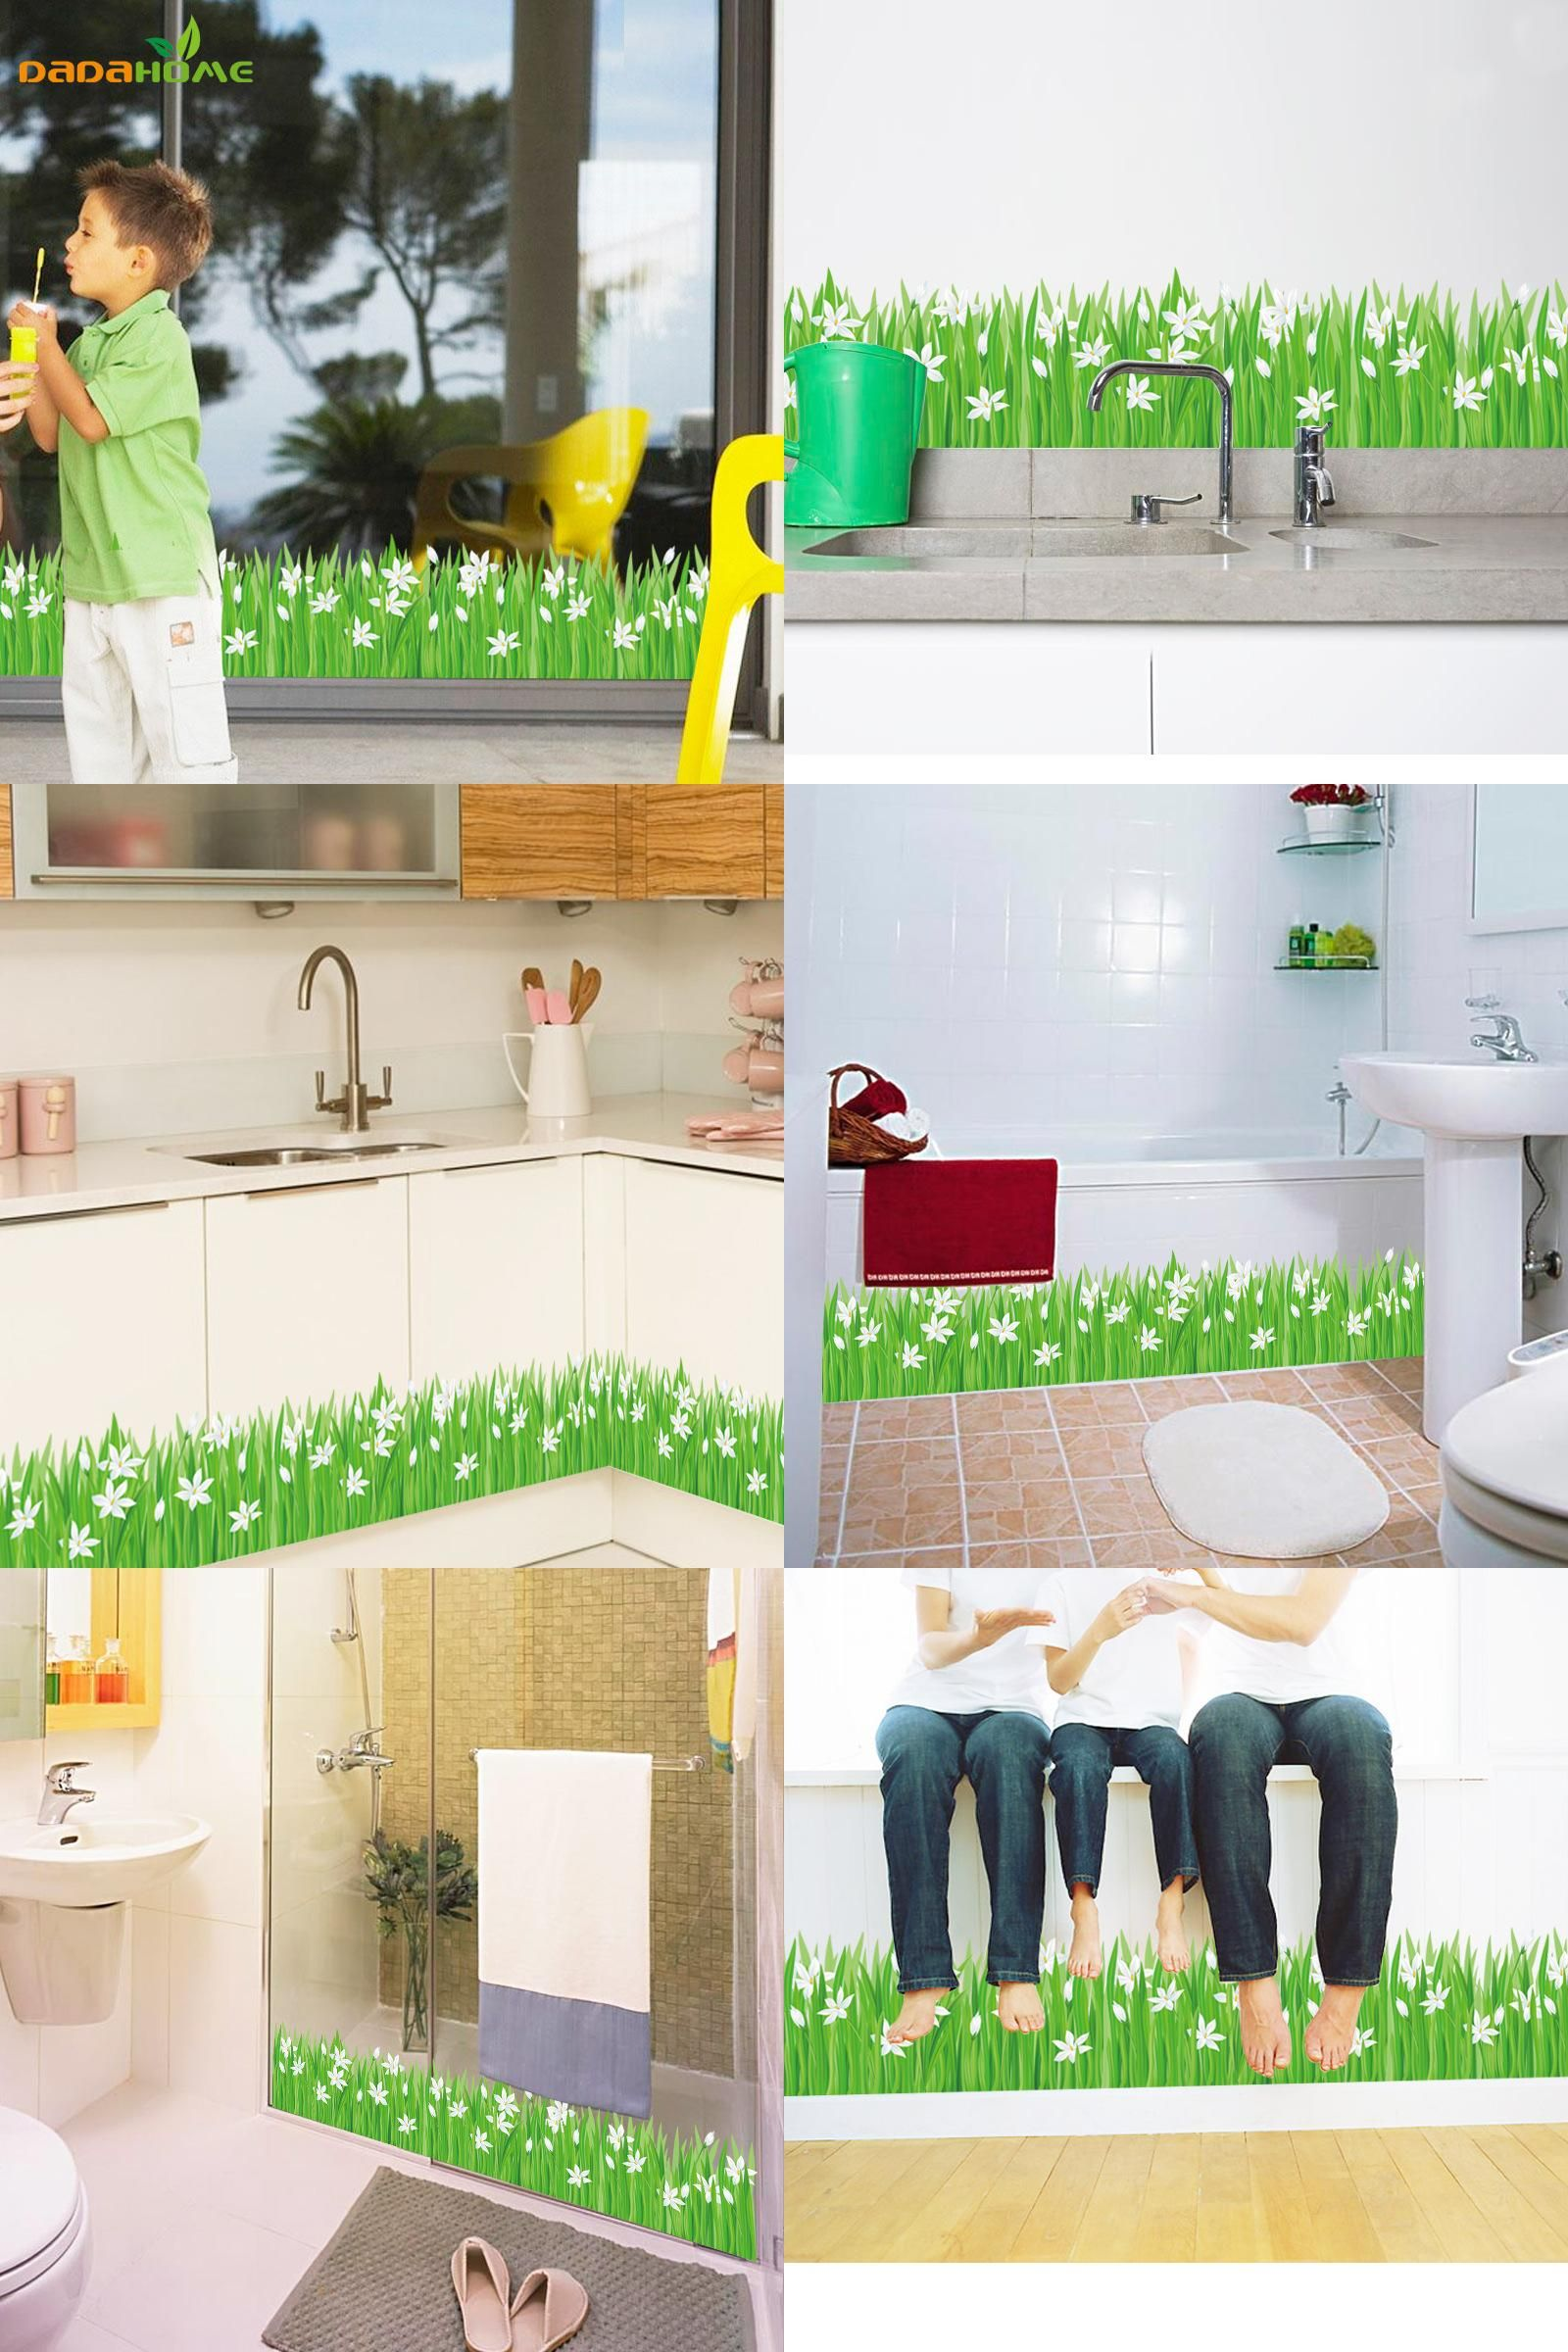 [Visit To Buy] Sayuri Grass Skirting Diy Wall Sticker Glass